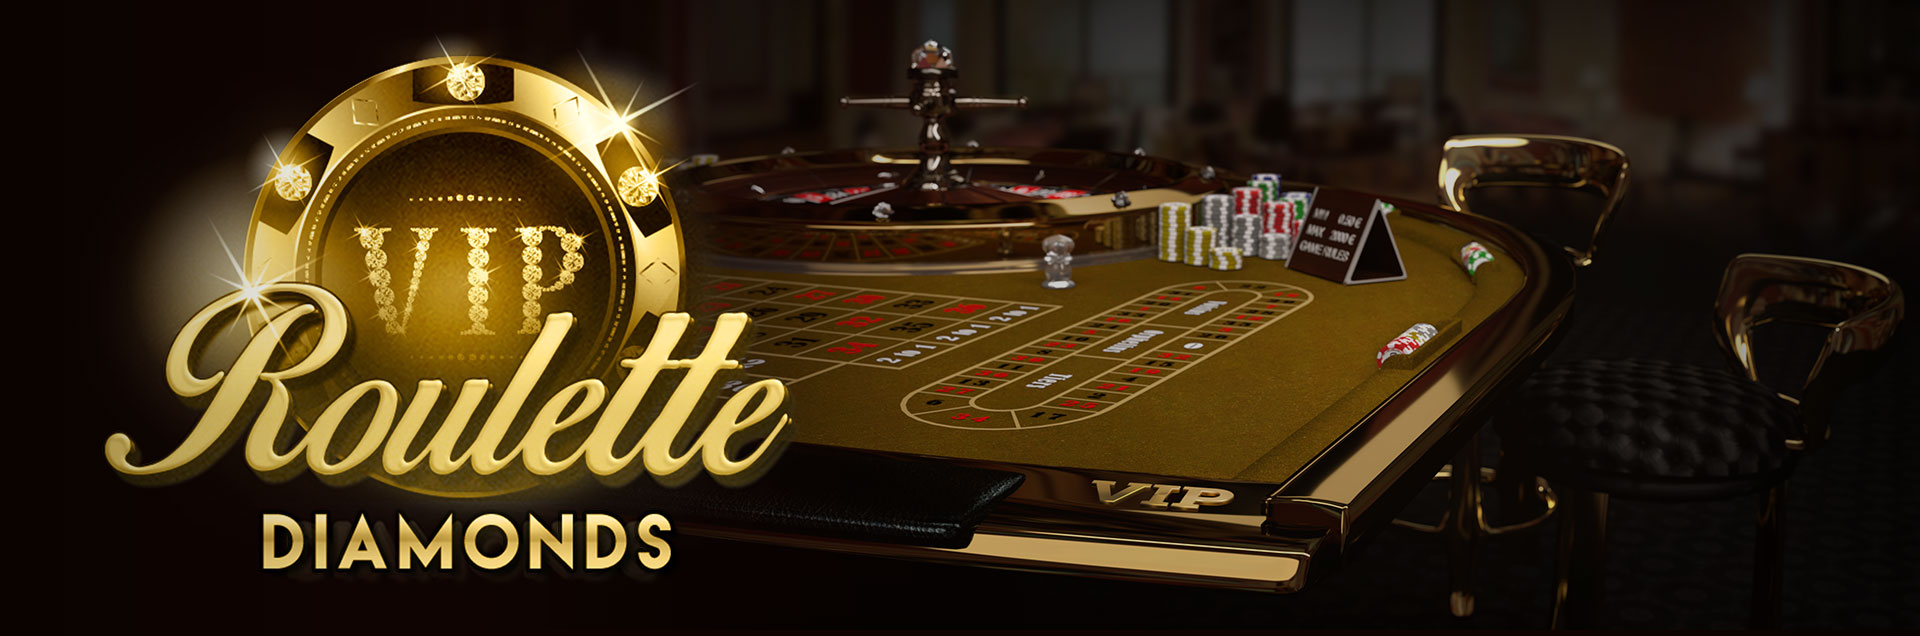 Roulette Diamonds vip logo